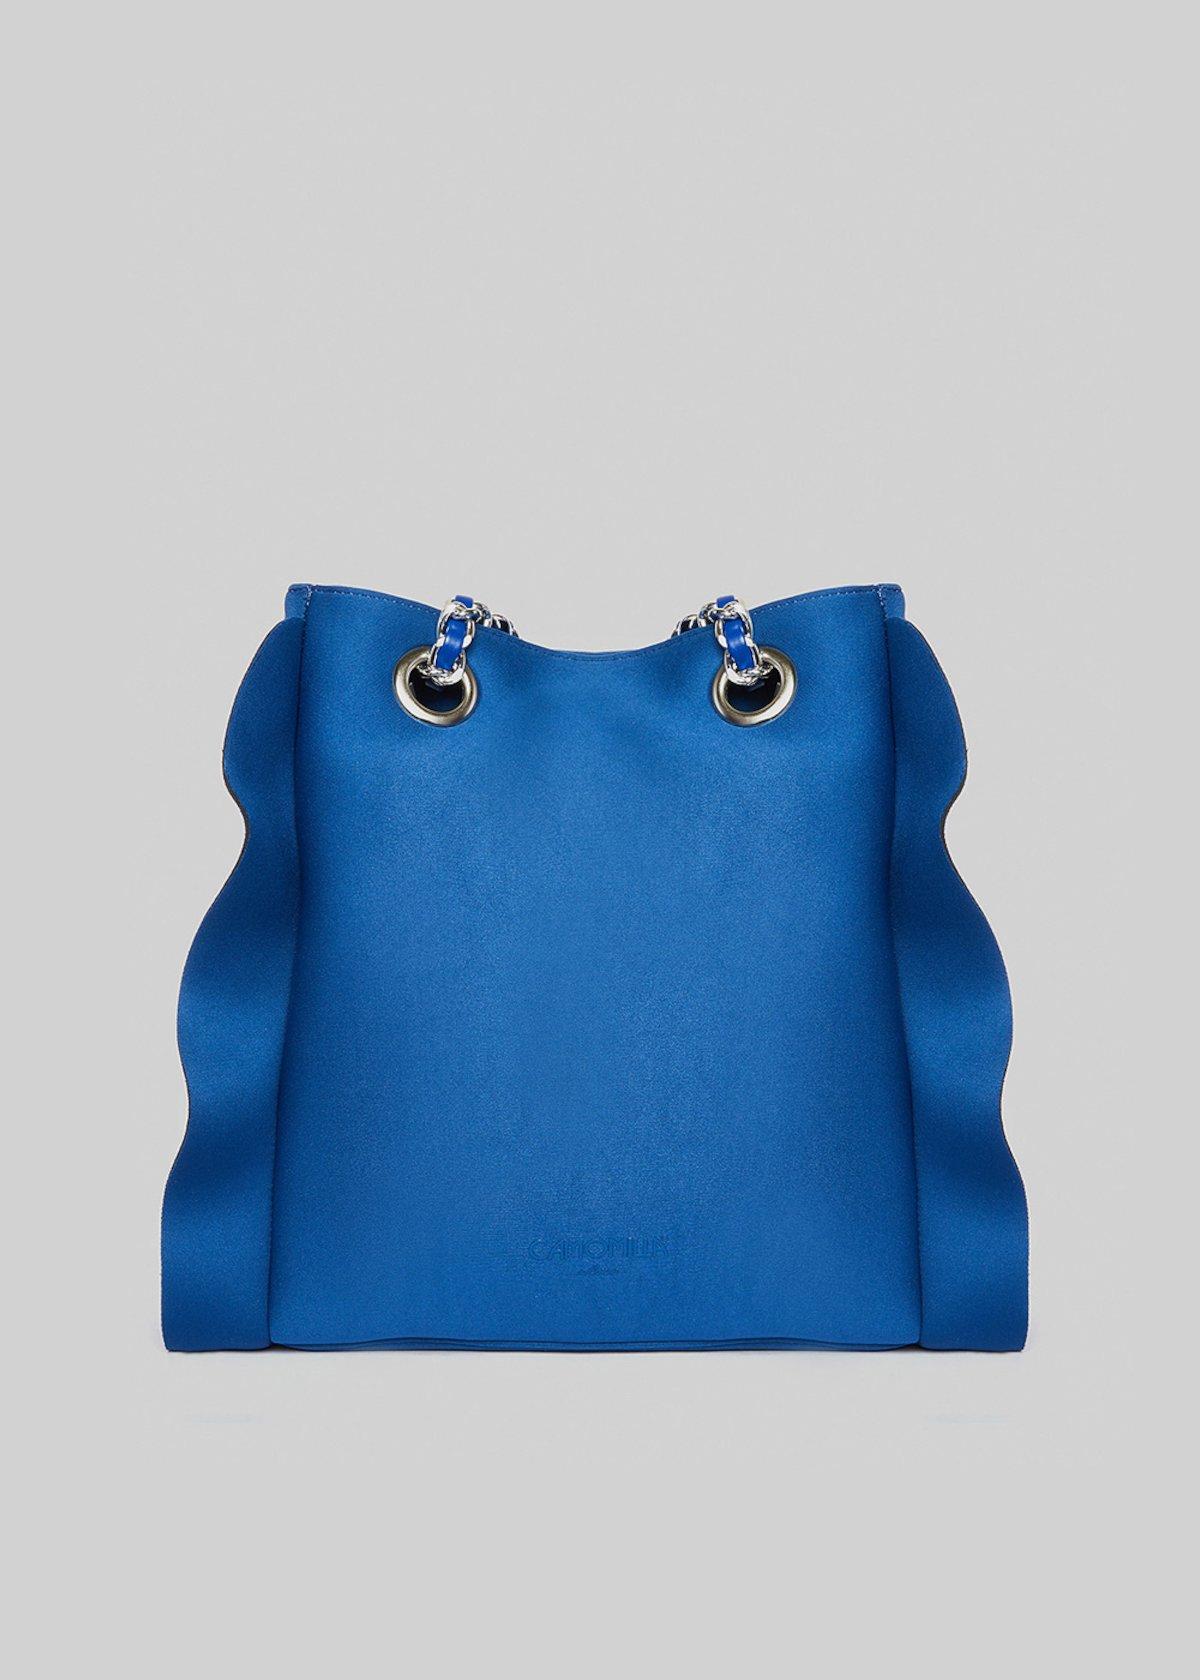 Neoprene Microruffle bag with ruffles